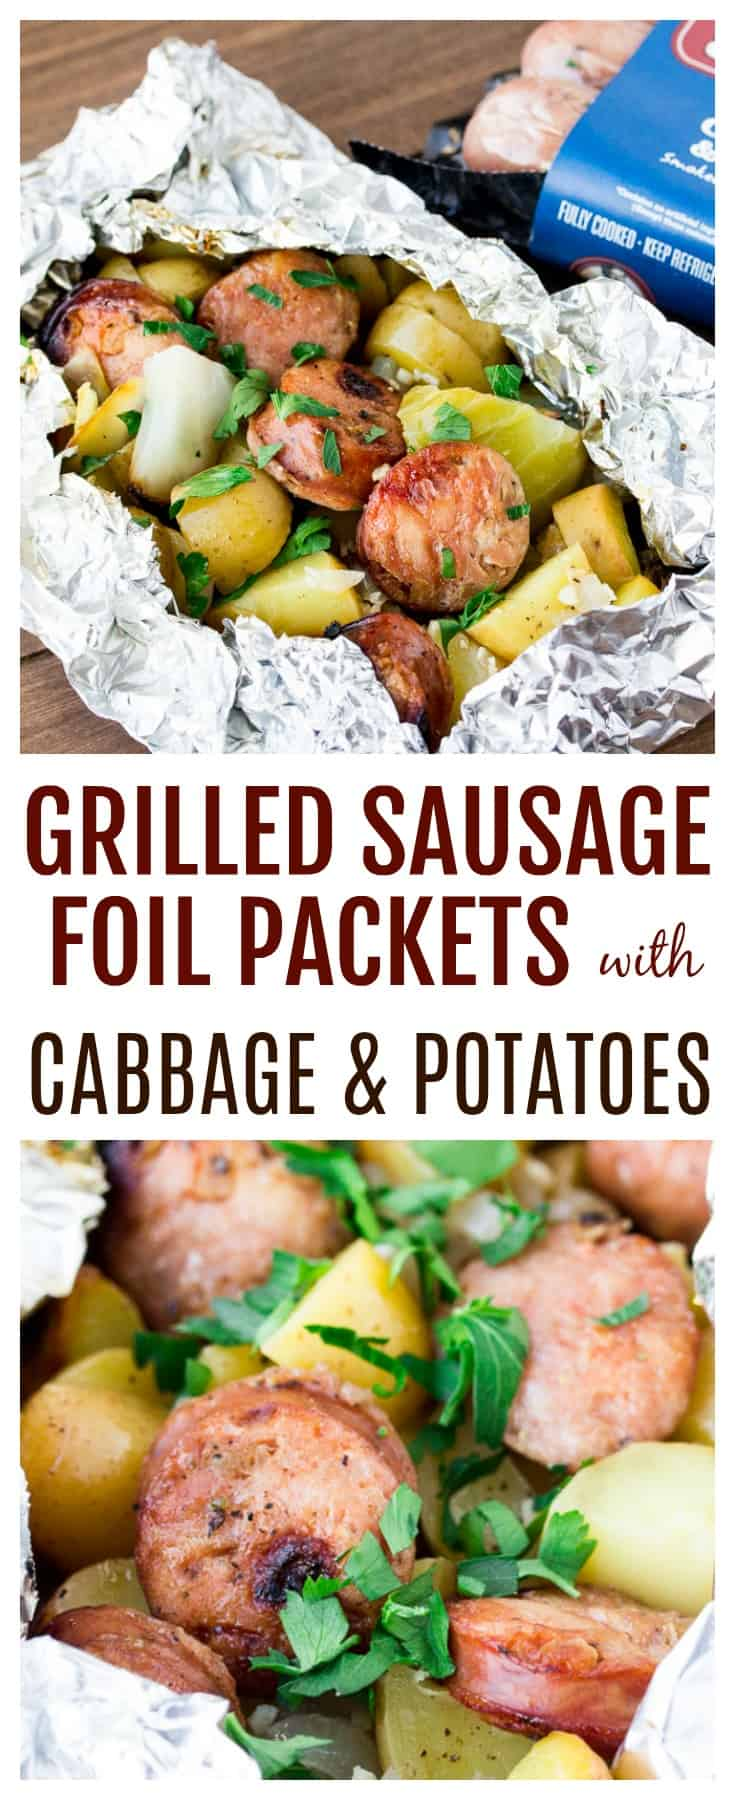 This easy recipe for Grilled Sausage with Cabbage and Potatoes is a perfect grilling dinner recipe even for busy weeknights! It's gluten free and delicious! | #ad #grilledsausage #chickensausage #summerrecipes #glutenfree